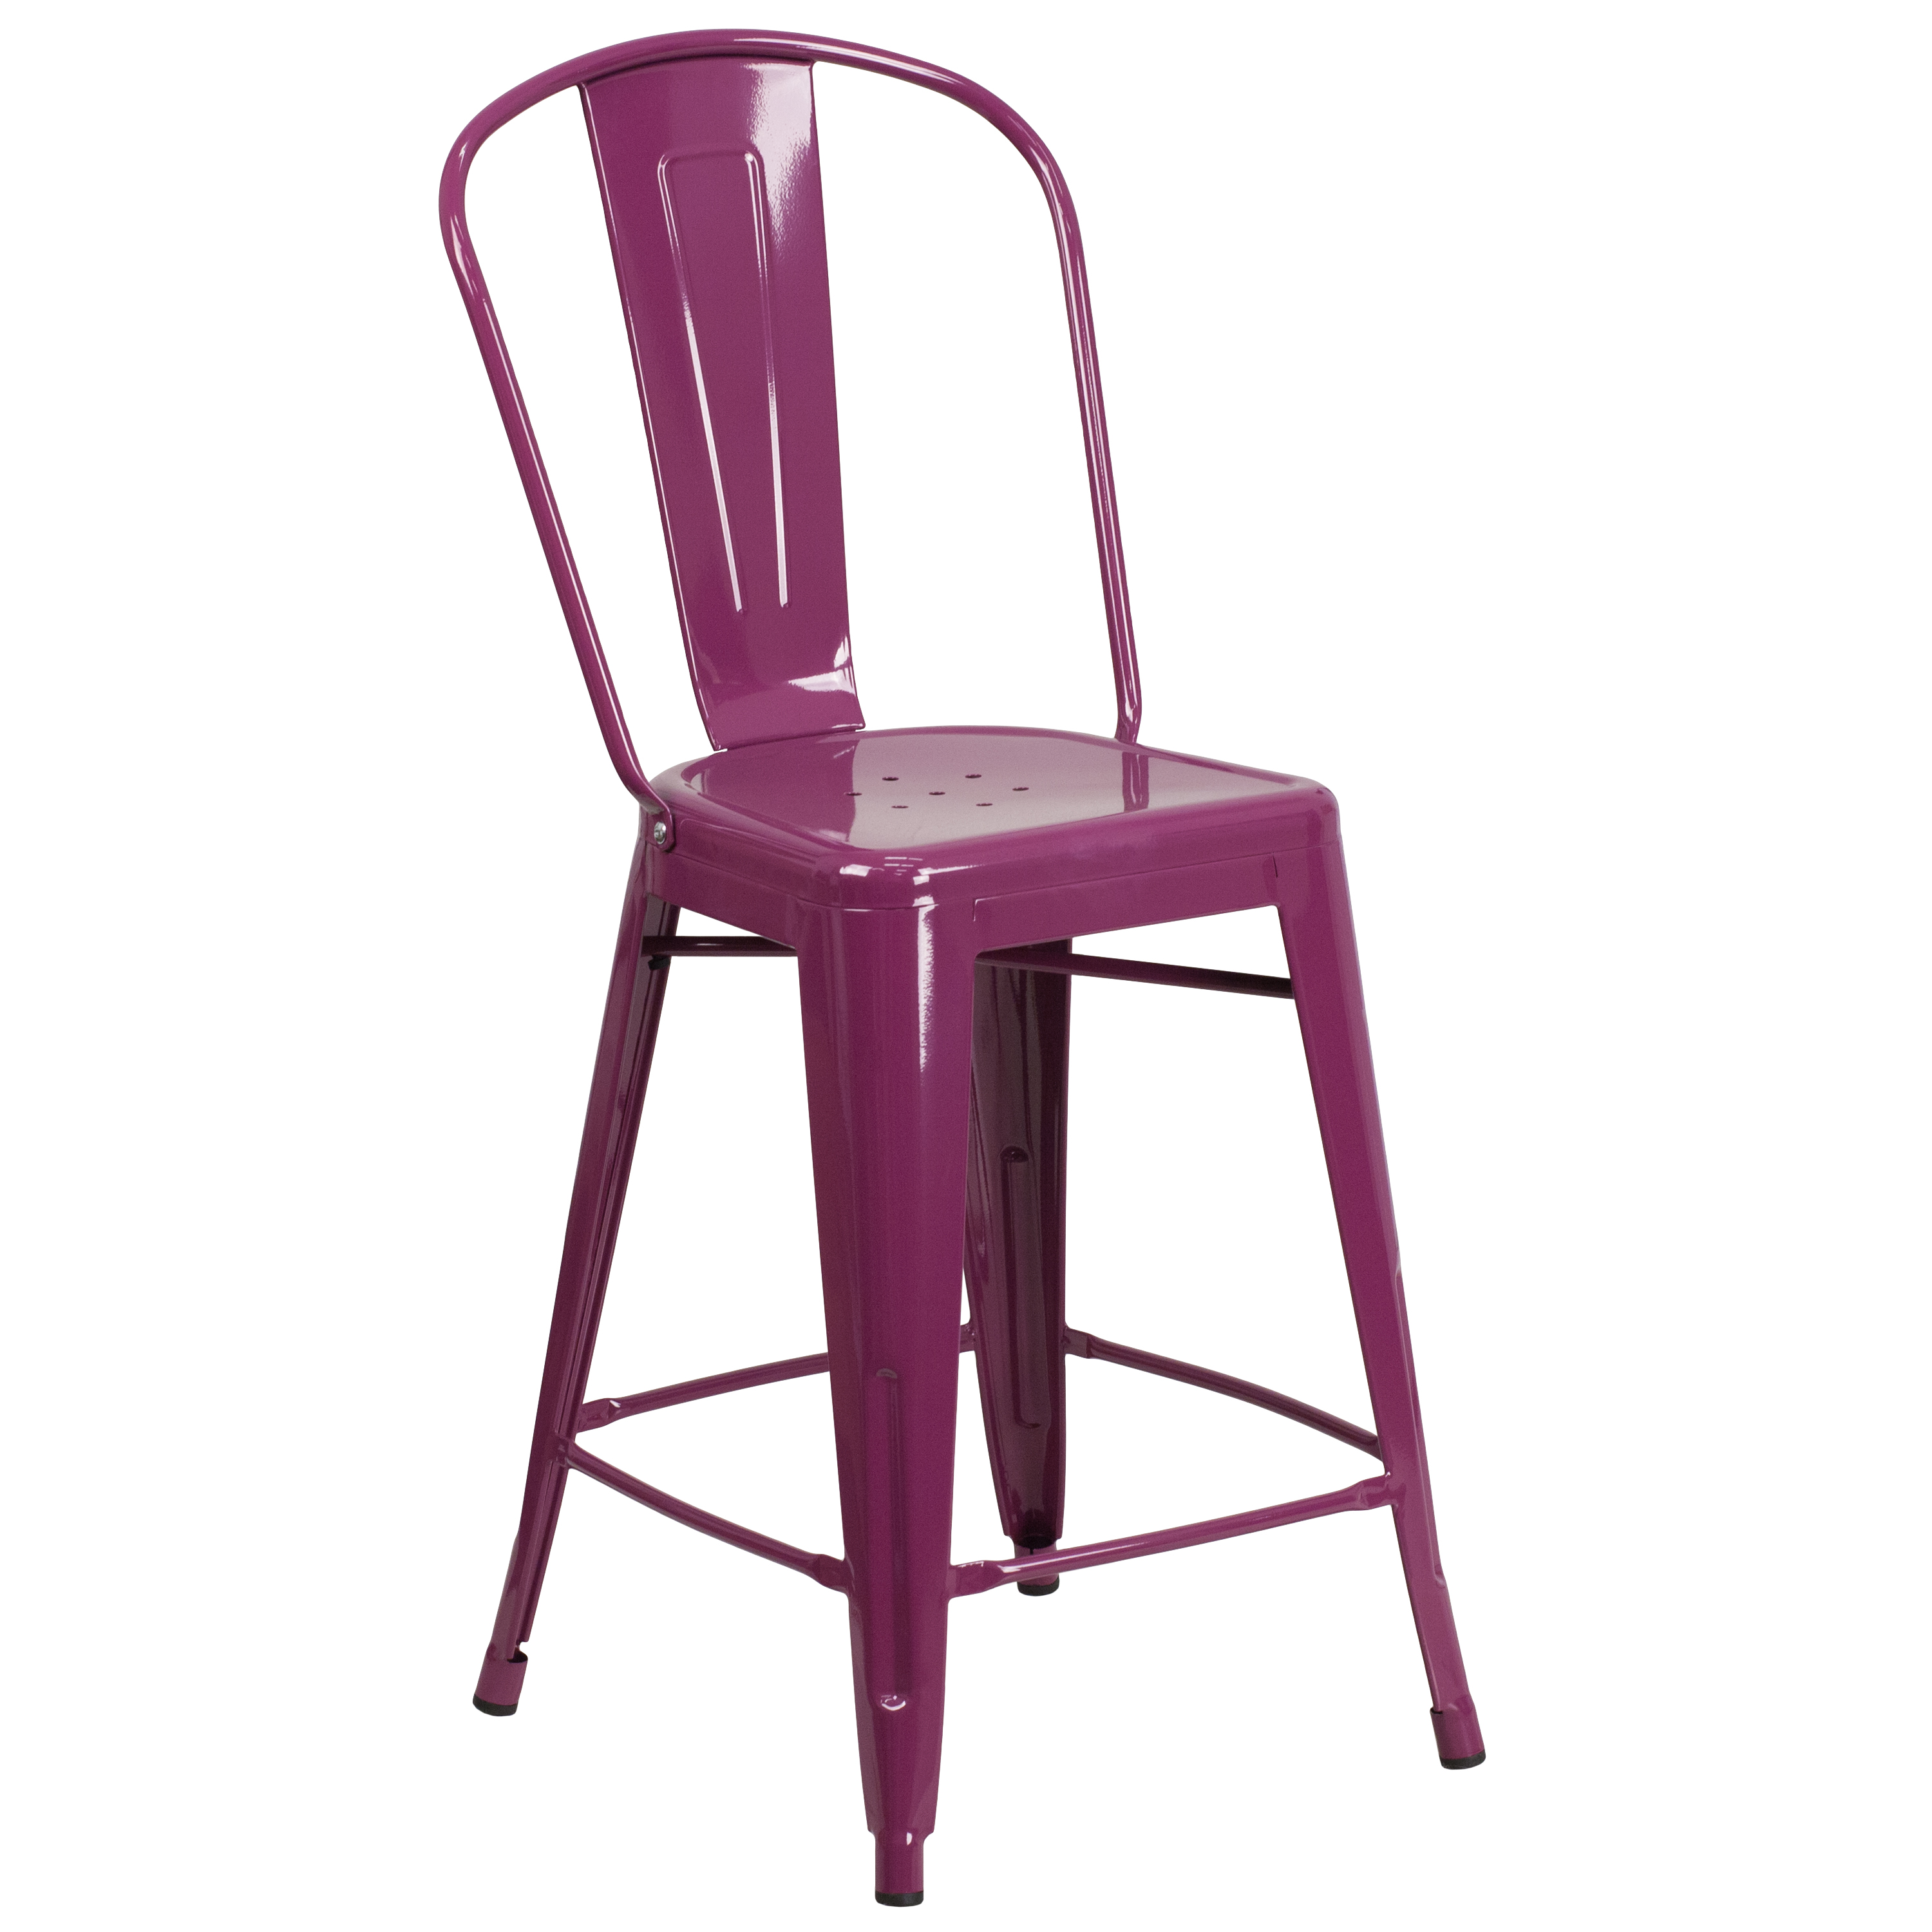 Sensational Details About 24H Metal Indoor Outdoor Counter Stool With Drain Holes And Back Squirreltailoven Fun Painted Chair Ideas Images Squirreltailovenorg